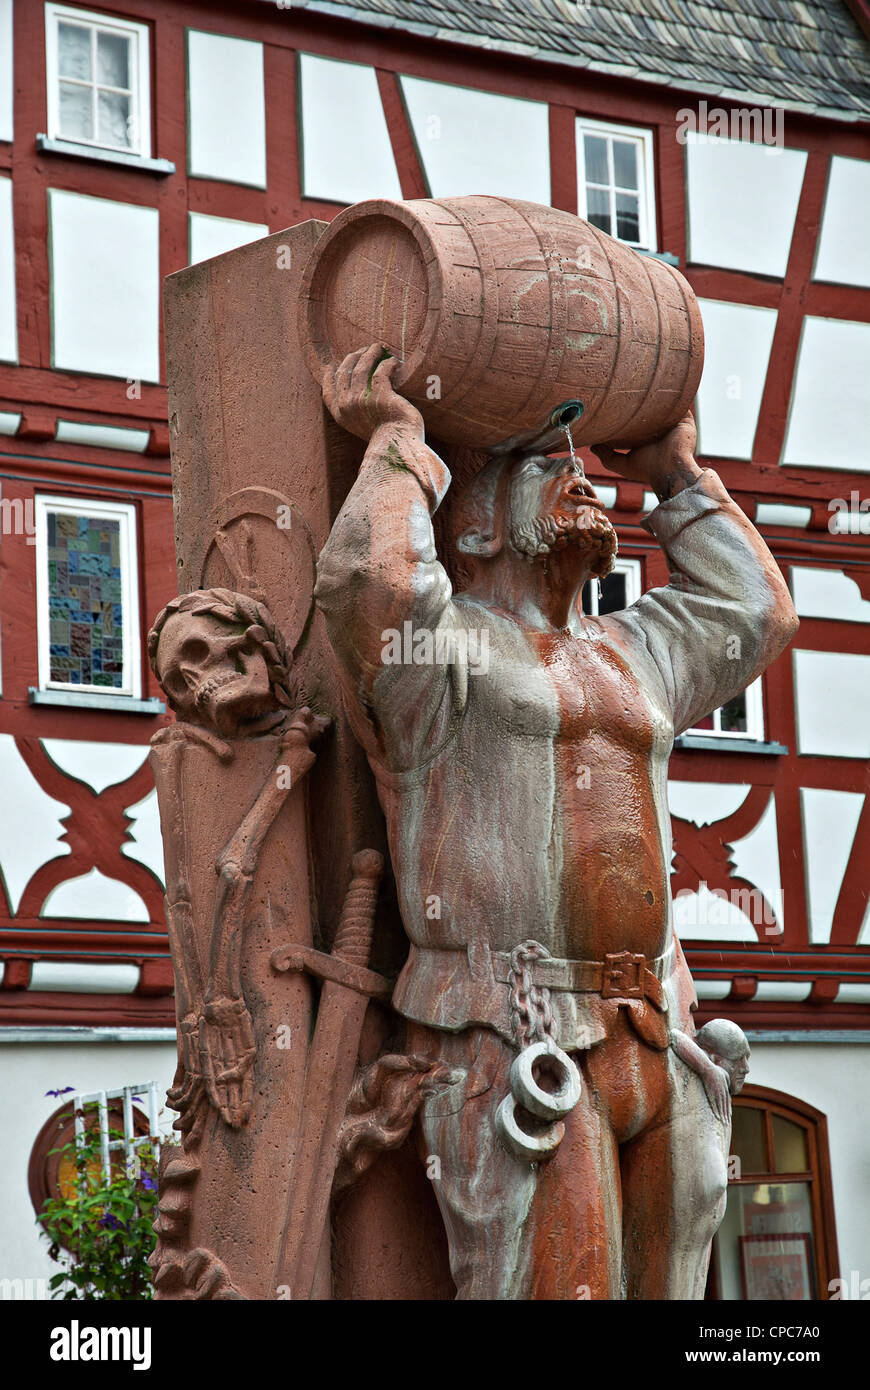 Monument in the old town of Limburg an der Lahn. - Stock Image